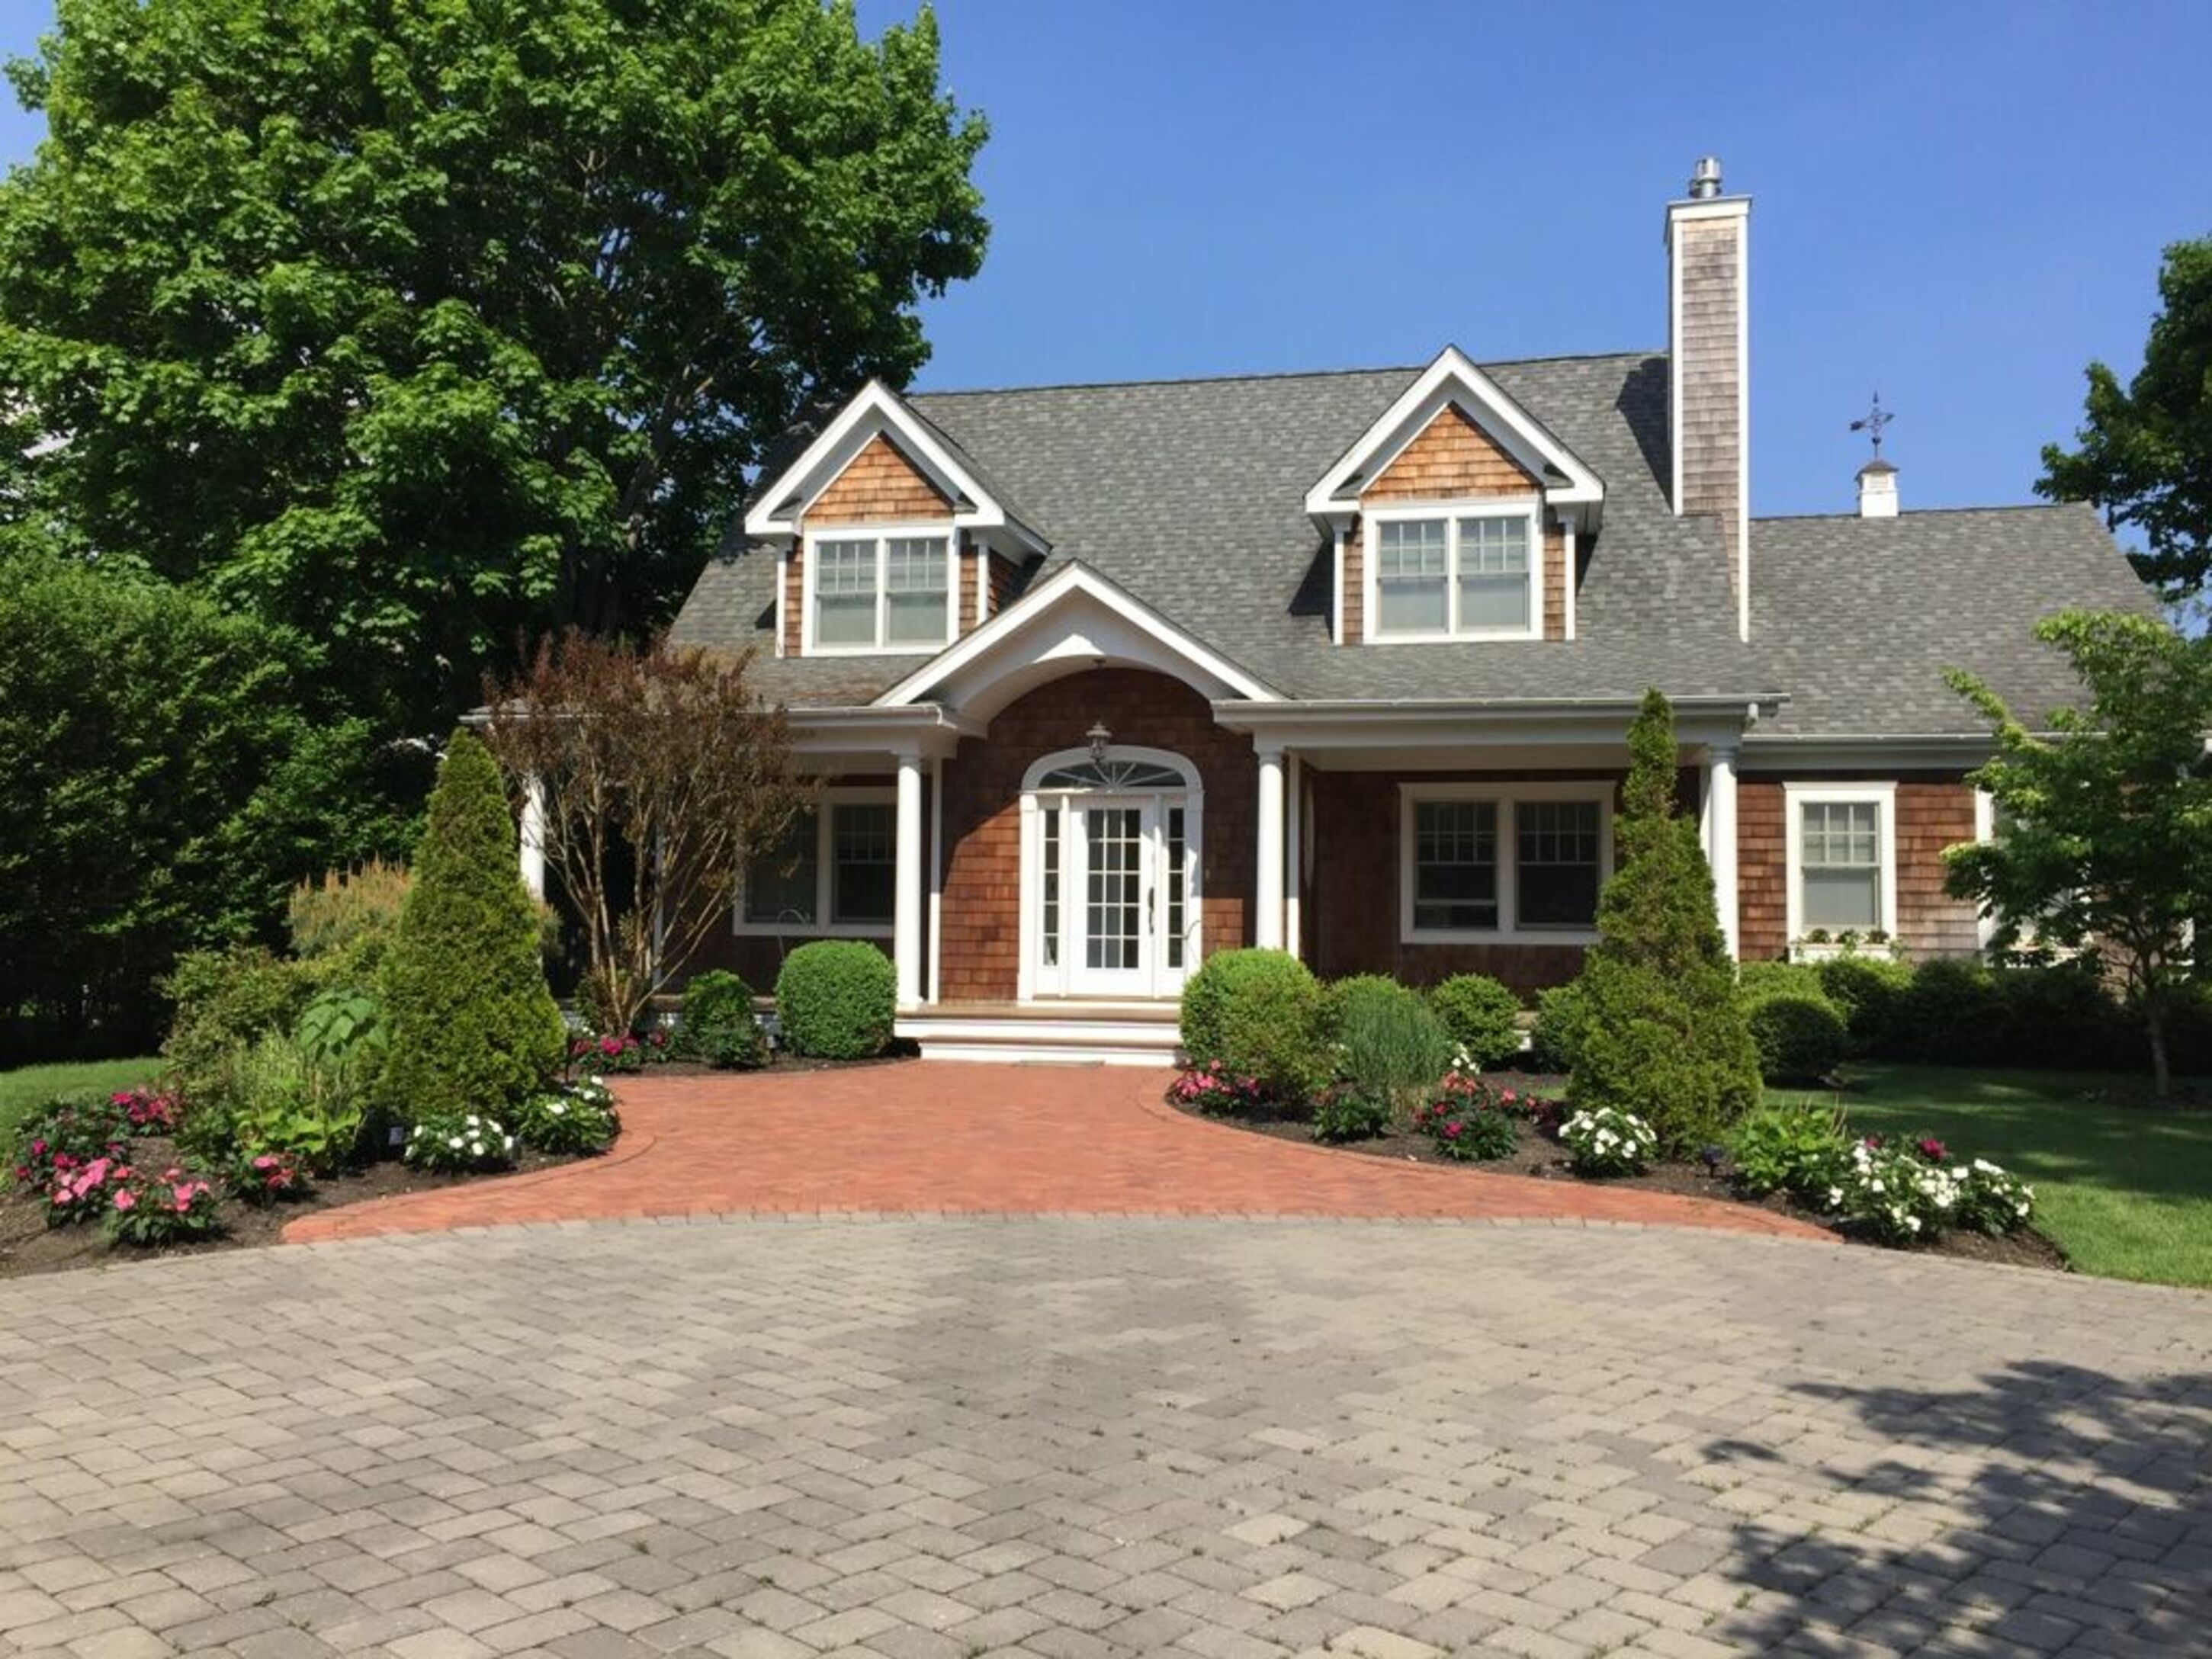 38 Oak St - Westhampton Beach North, New York